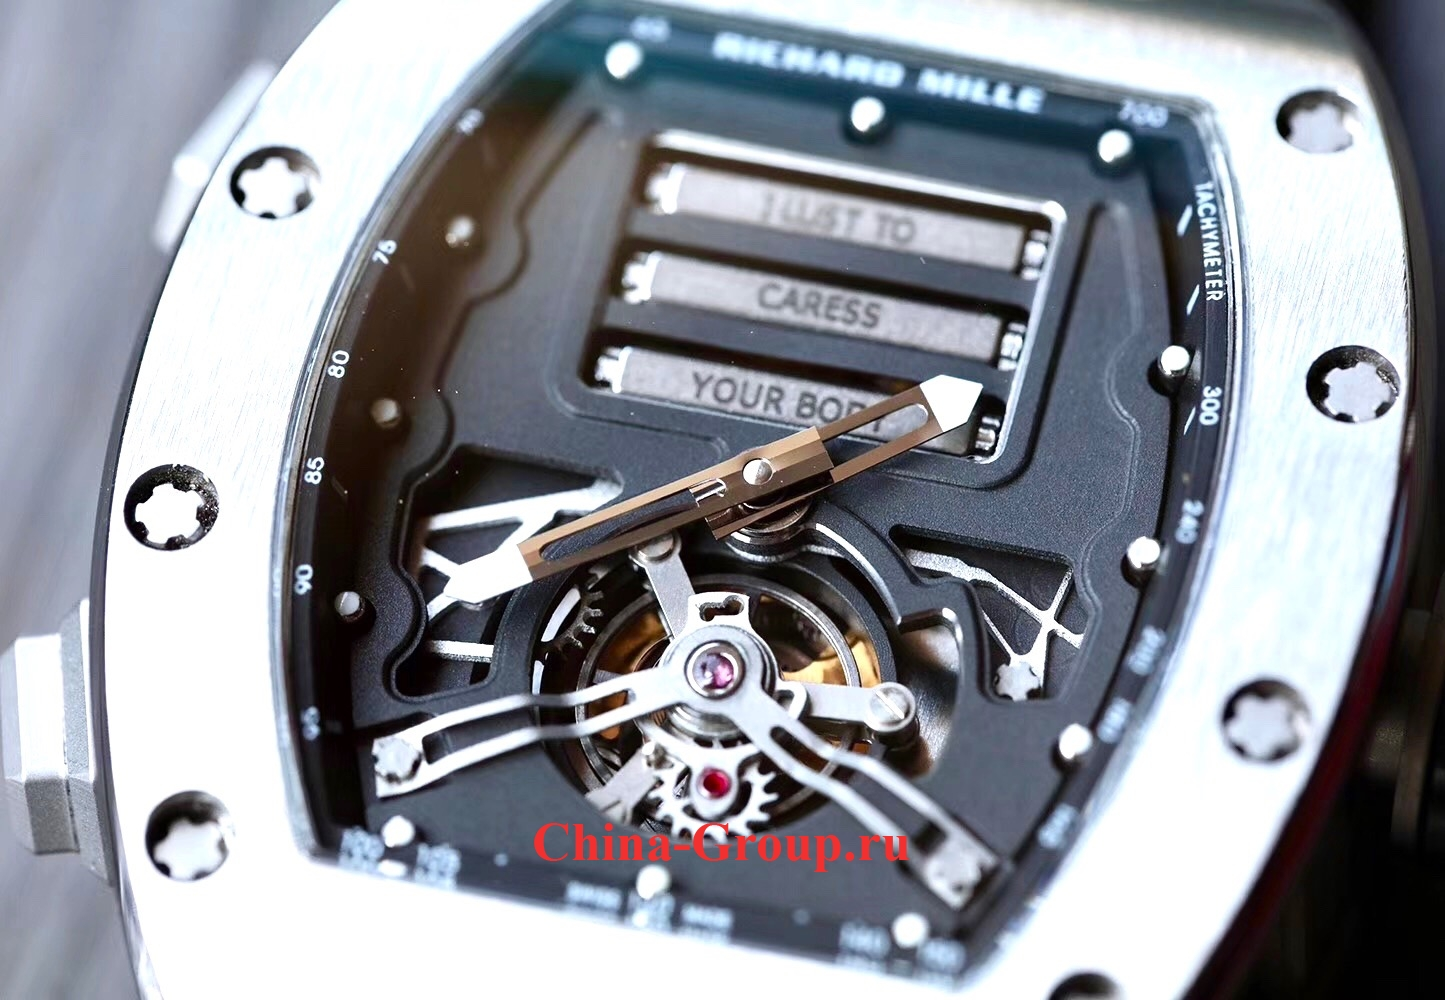 купить Клон Richard Mille Erotic Tourbillon RM069-001 как оригинал реплика photo